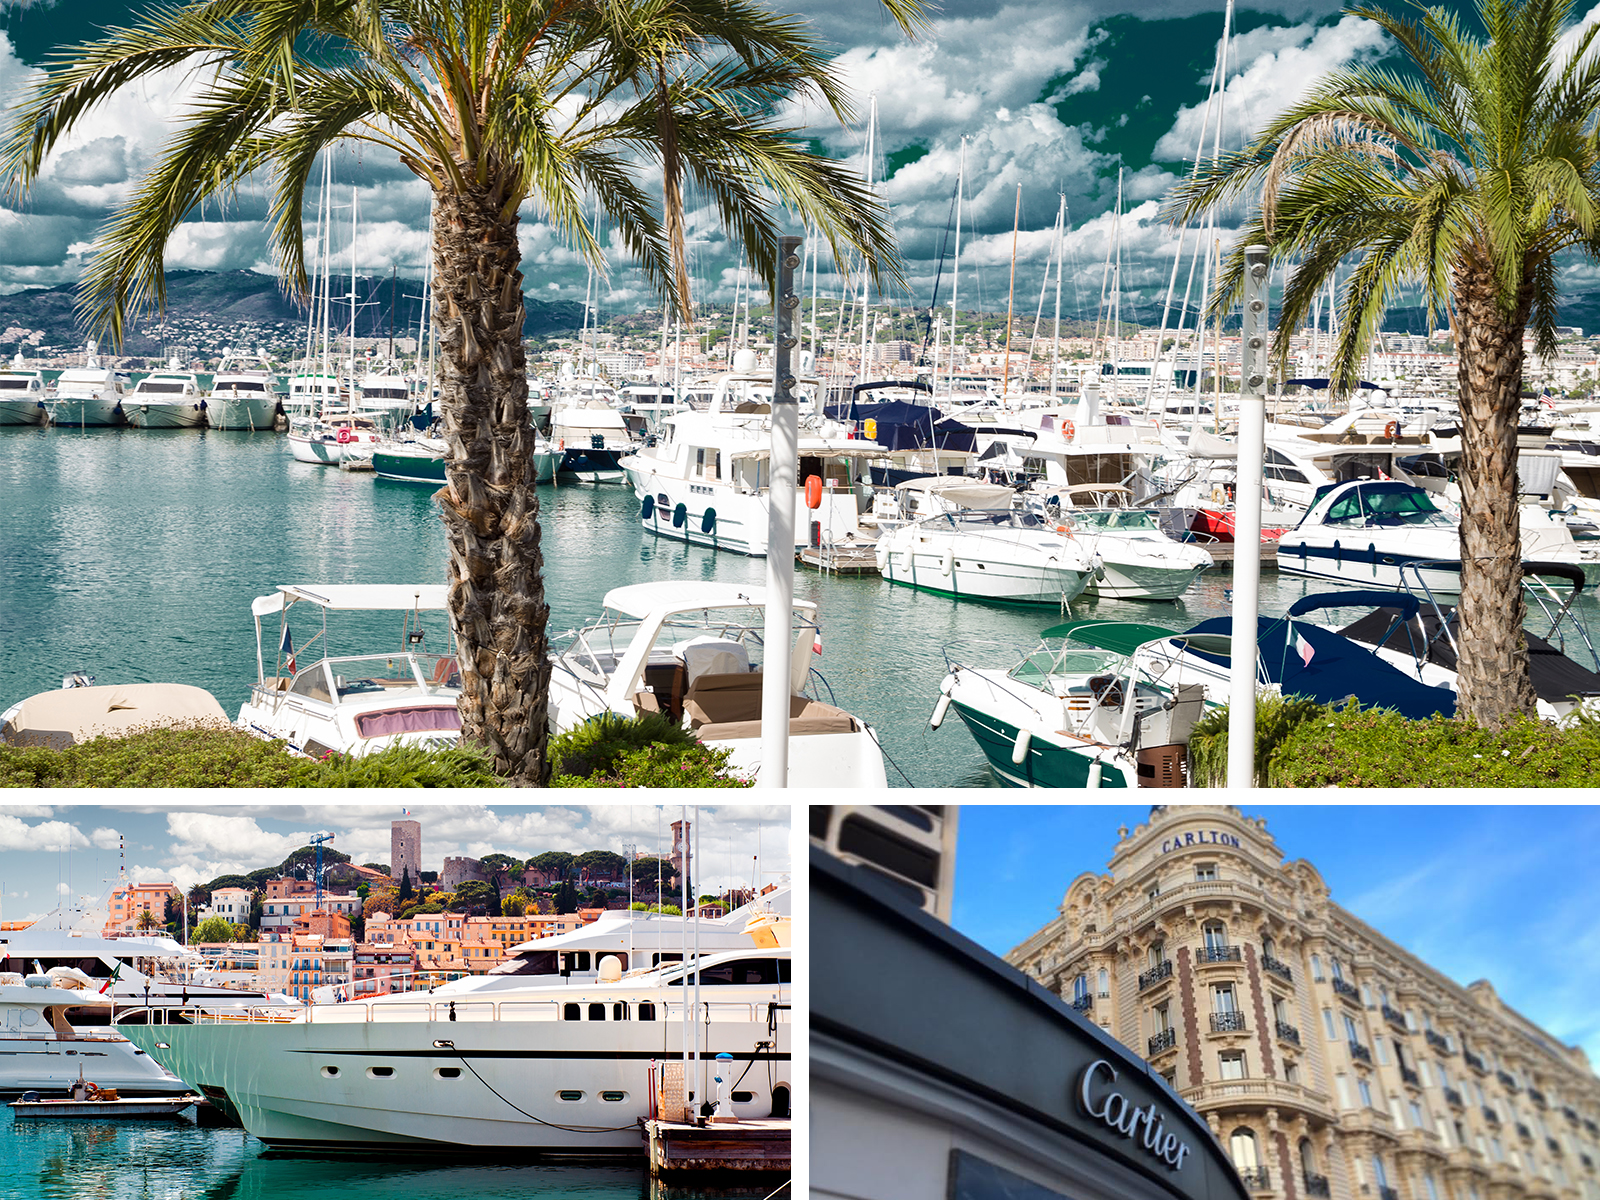 Day2_-_Cannes.jpg?1556221435